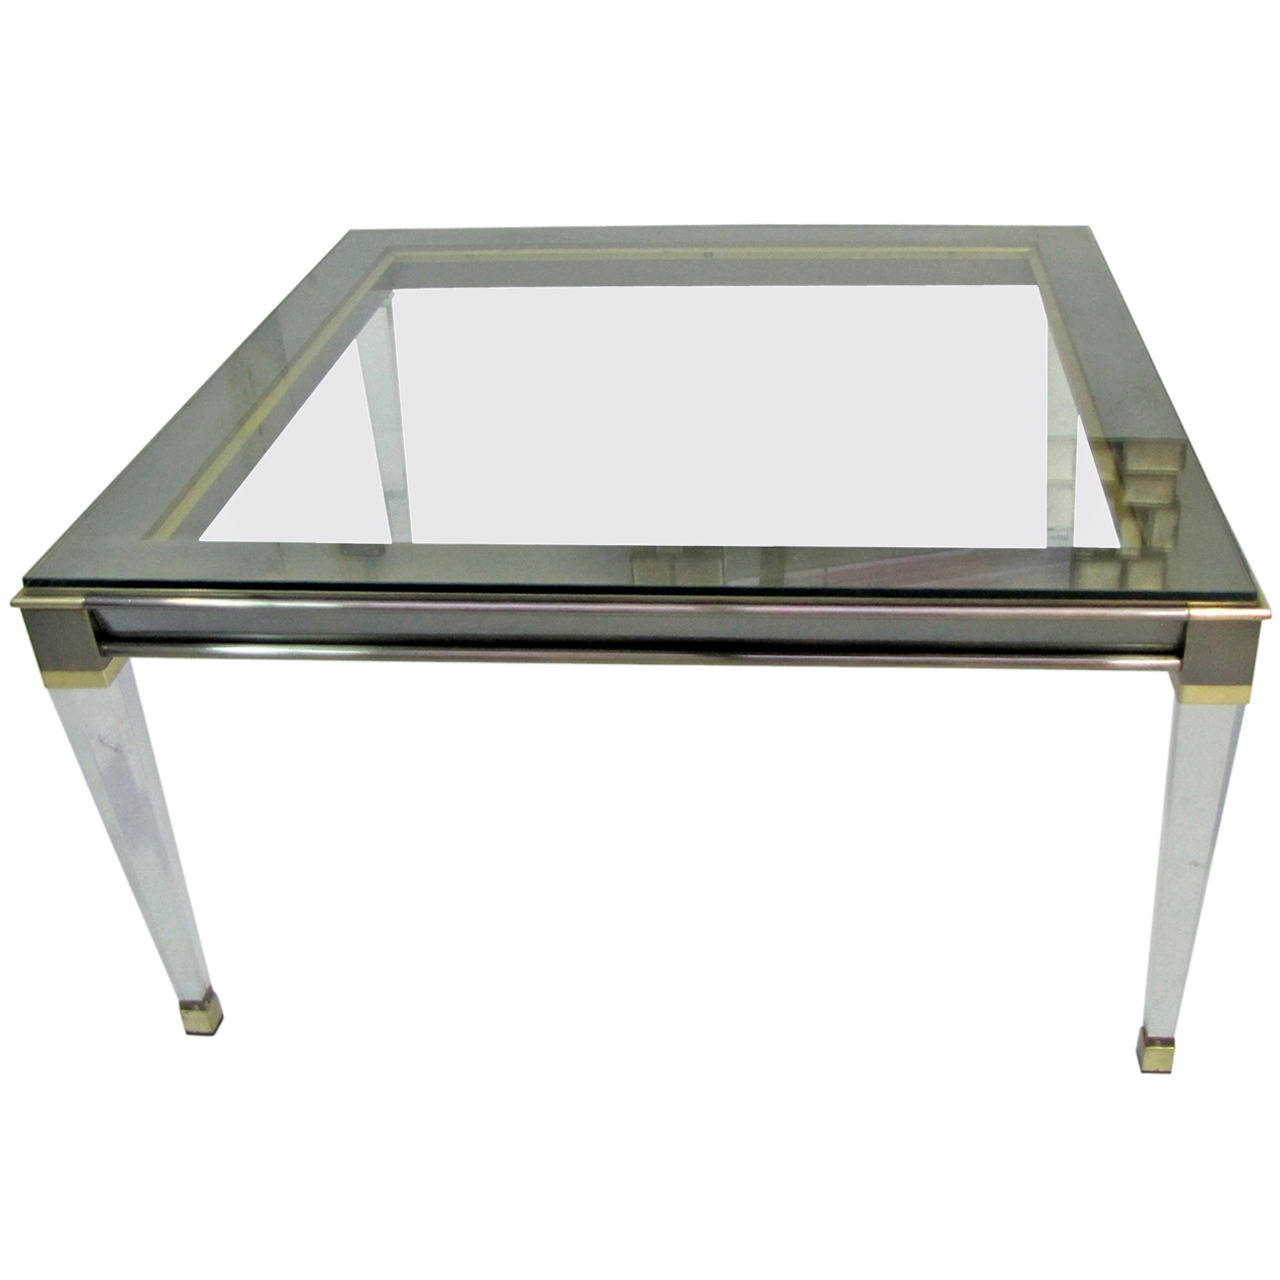 Coffee table by belgo chrome belgium circa 1970 - Table basse 110x110 ...